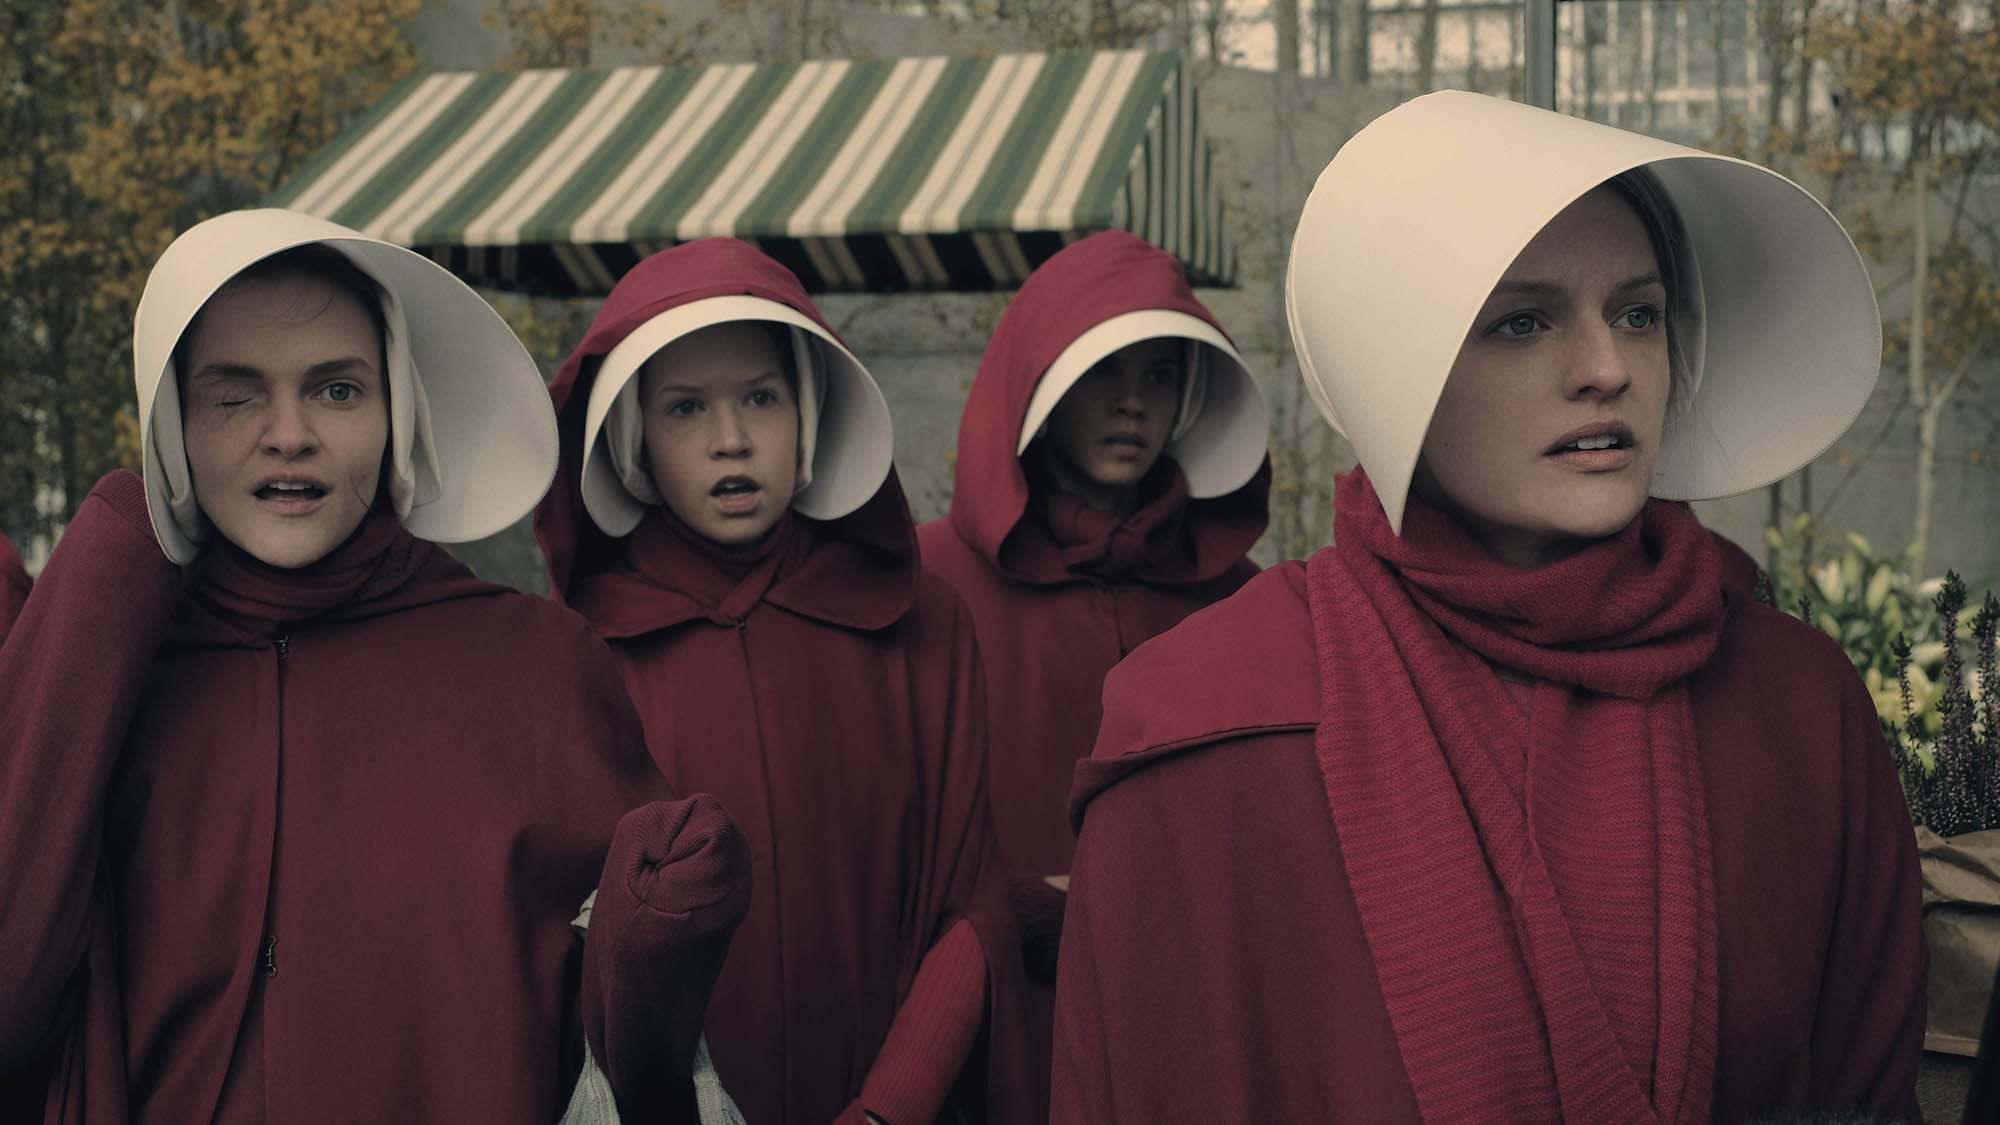 Discover the IRL history behind Hulu's 'The Handmaid's Tale'